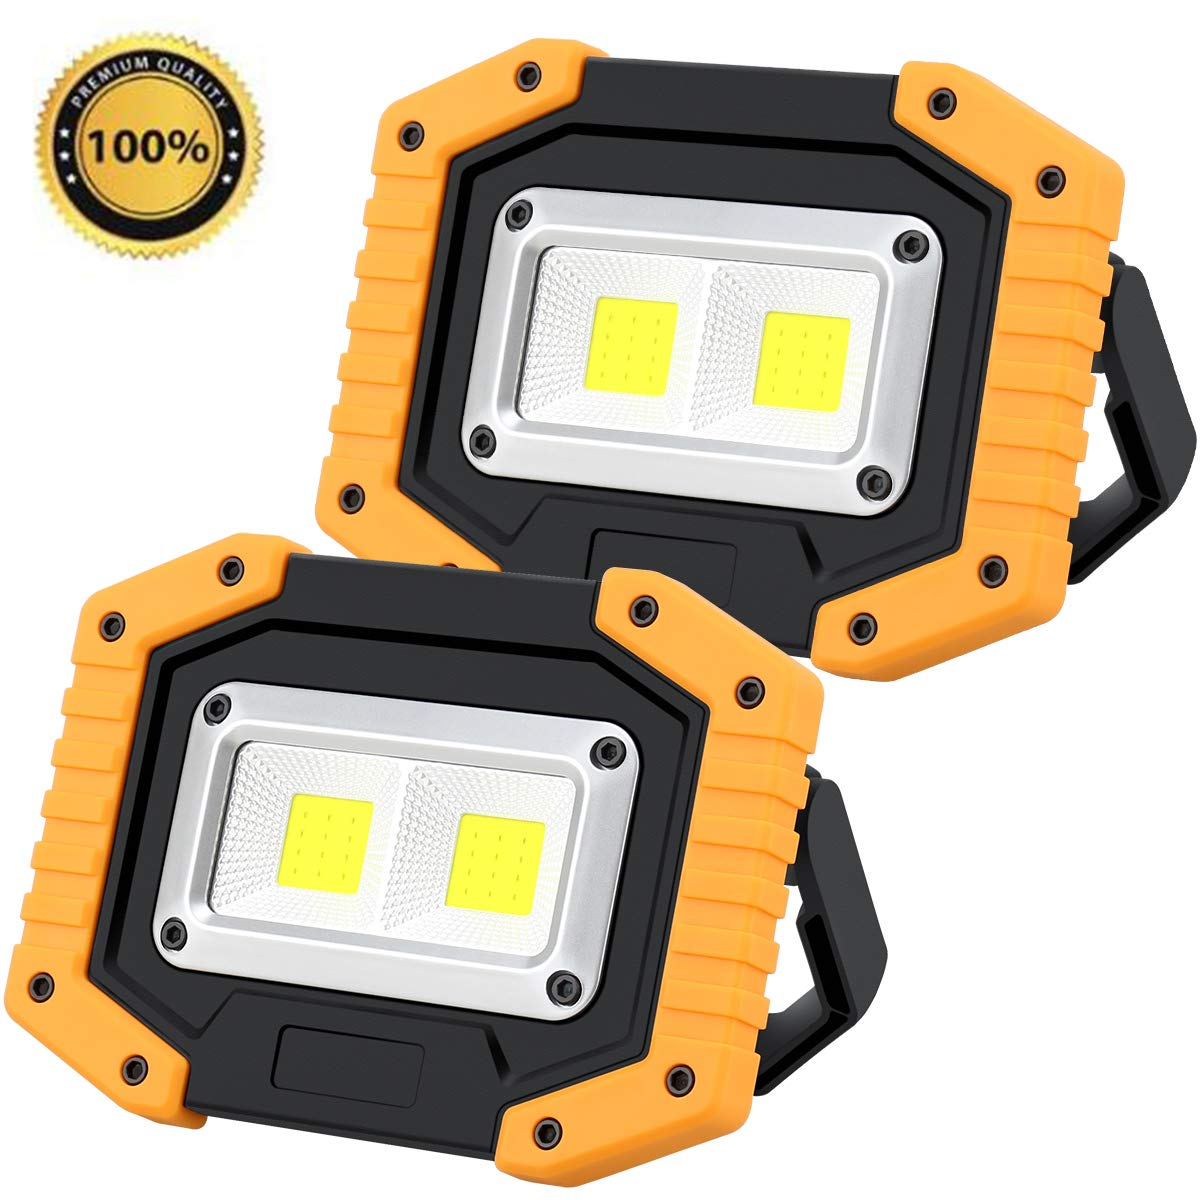 【Upgraded】Rechargeable LED Work Light, 30W 1200LM Portable LED Flood Lights for Outdoor Camping Fishing Hiking Emergency Car Repairing Job Lighting Workshop Construction Site COB Lights(2 Pack)